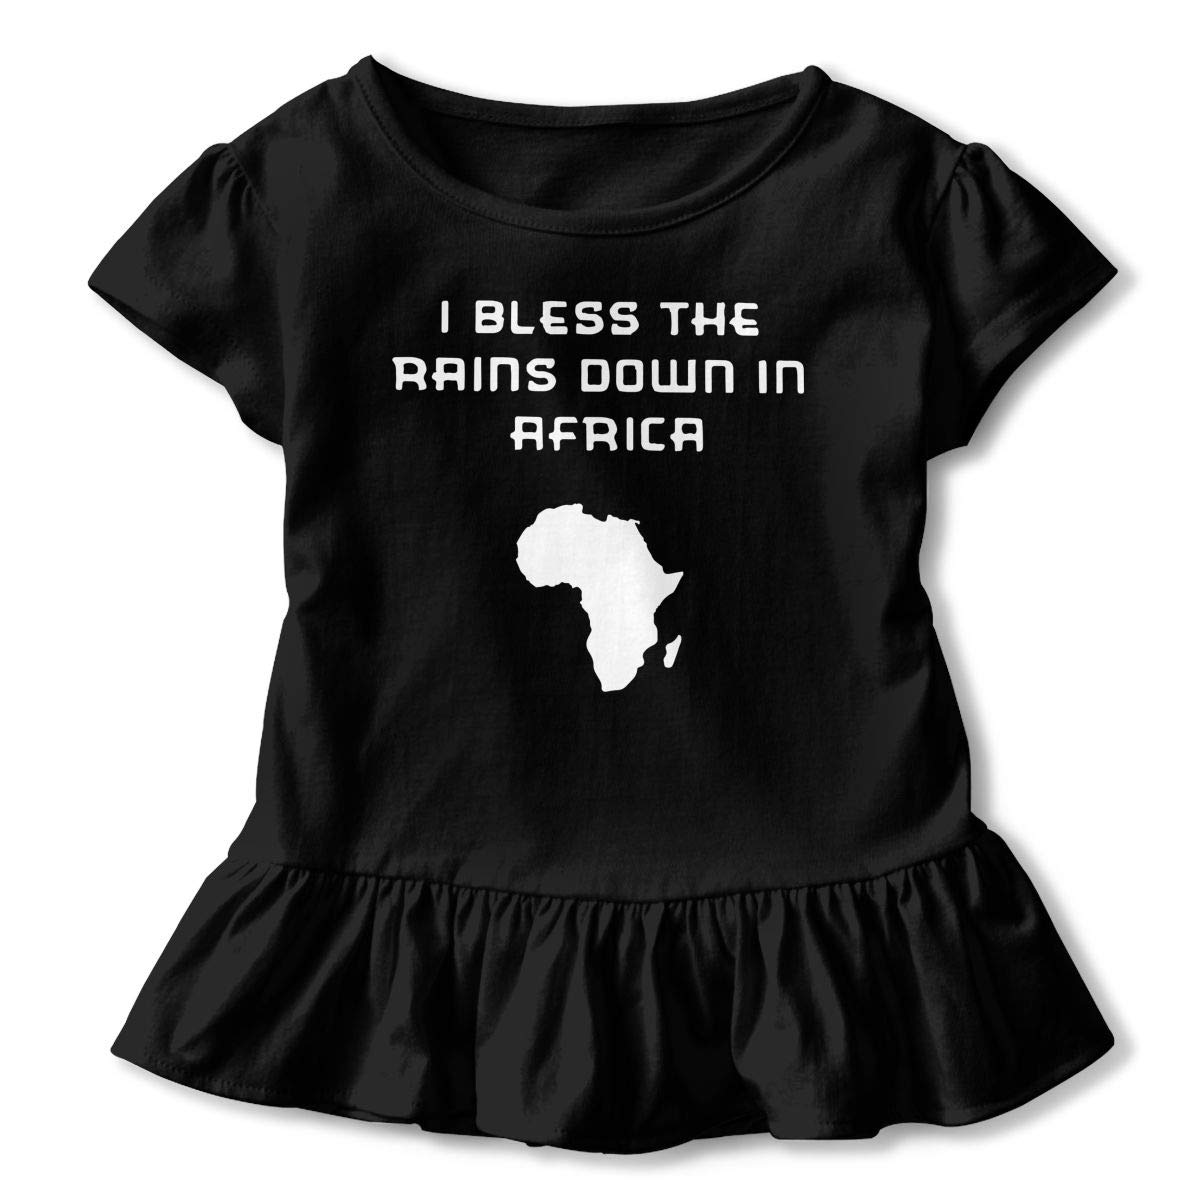 2-6 Years I Bless The Rains Down in Africa Baby Girls Short Sleeve Ruffle Tee Cotton Kids T Shirts